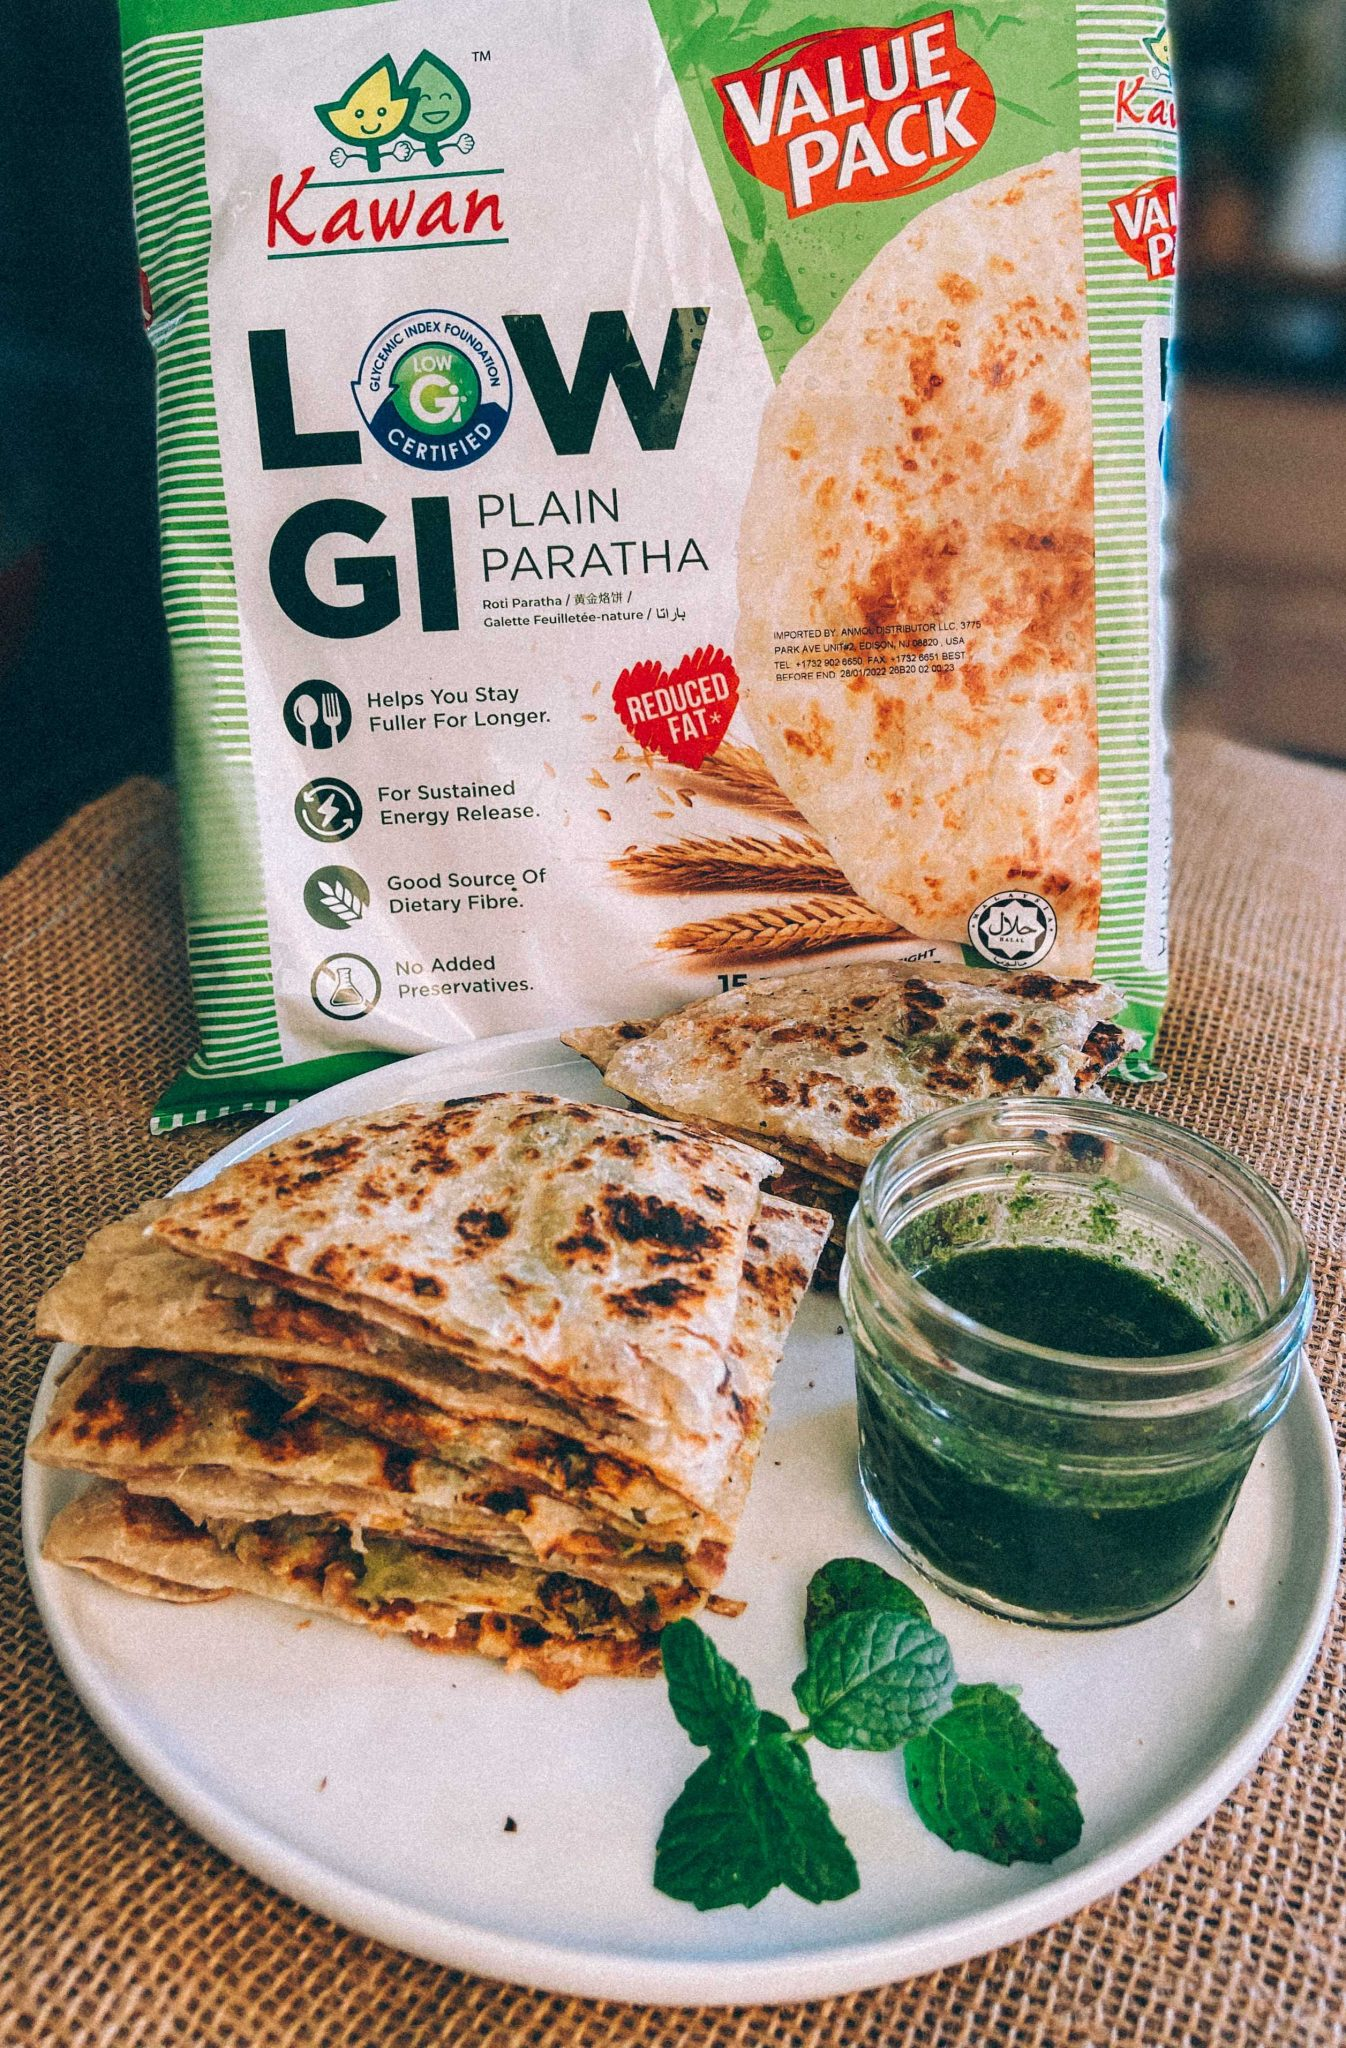 Vegan Paratha Quesadilla with Kawan low GI Parathas4 |Paratha Quesadilla by popular Maryland Indian food blog, Dreaming Loud: image of Low GI plain paratha next to a plate of paratha quesadillas.